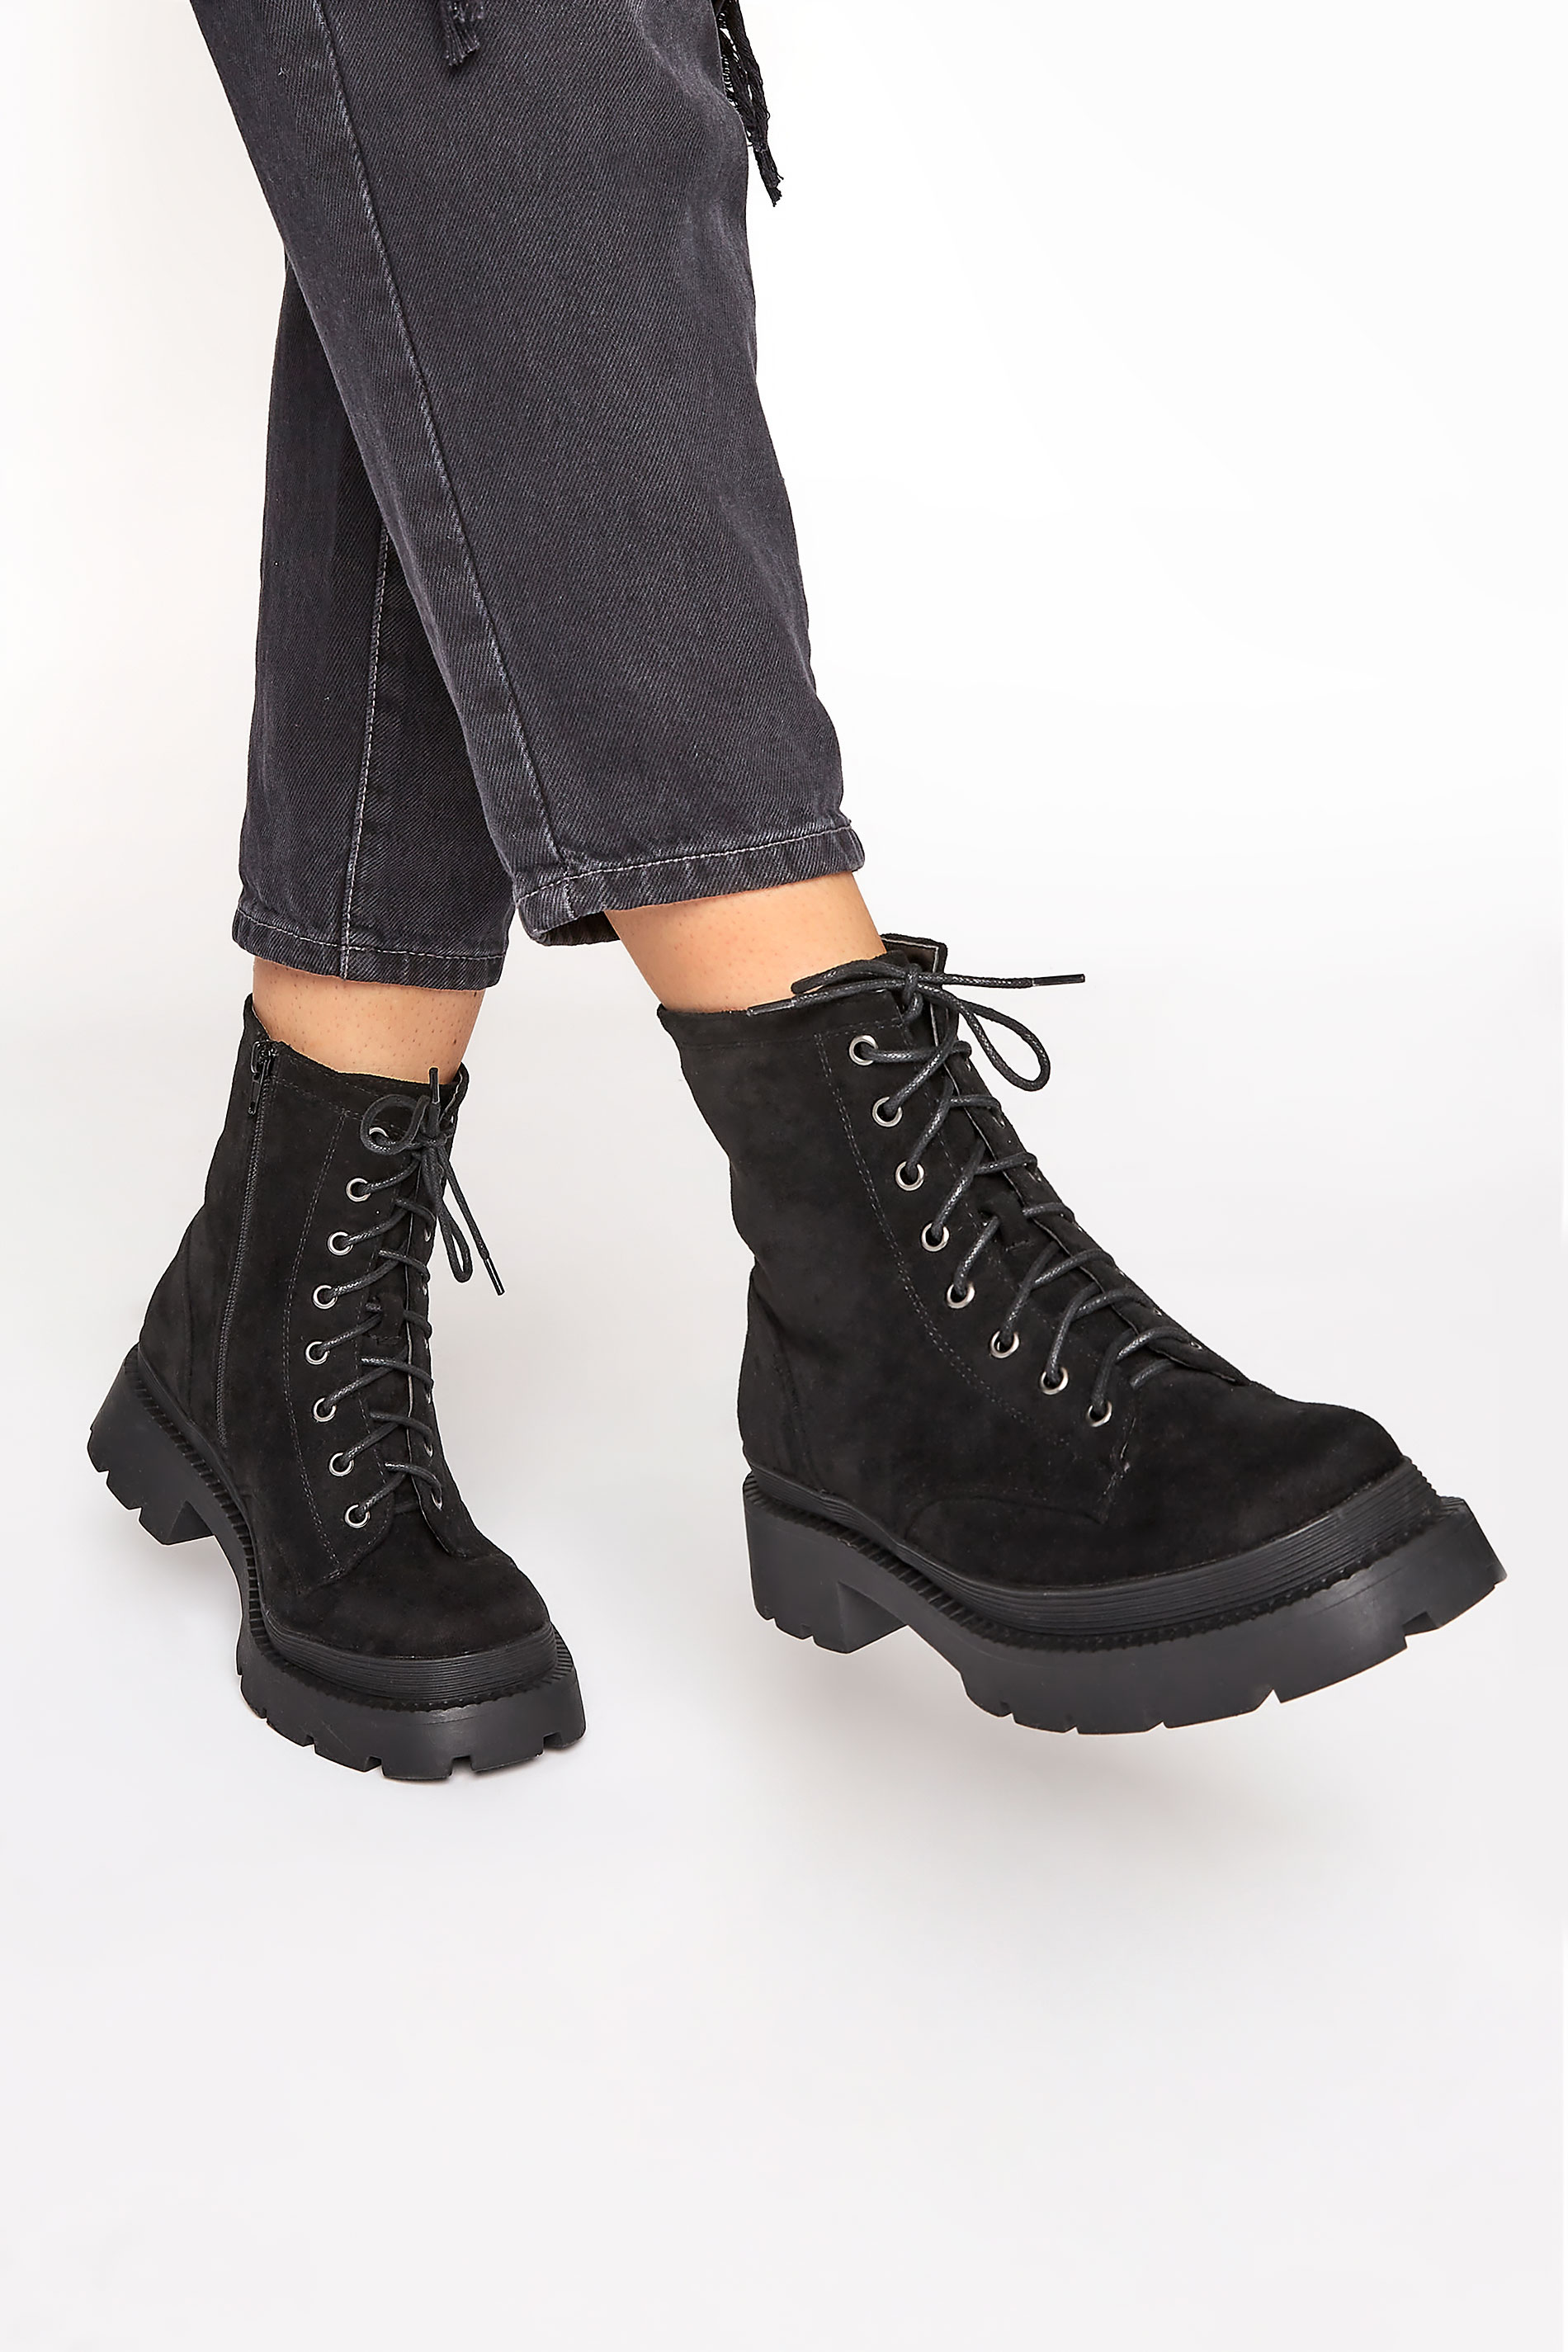 Black Faux Suede Chunky Lace-Up Boot in Regular Fit_M.jpg